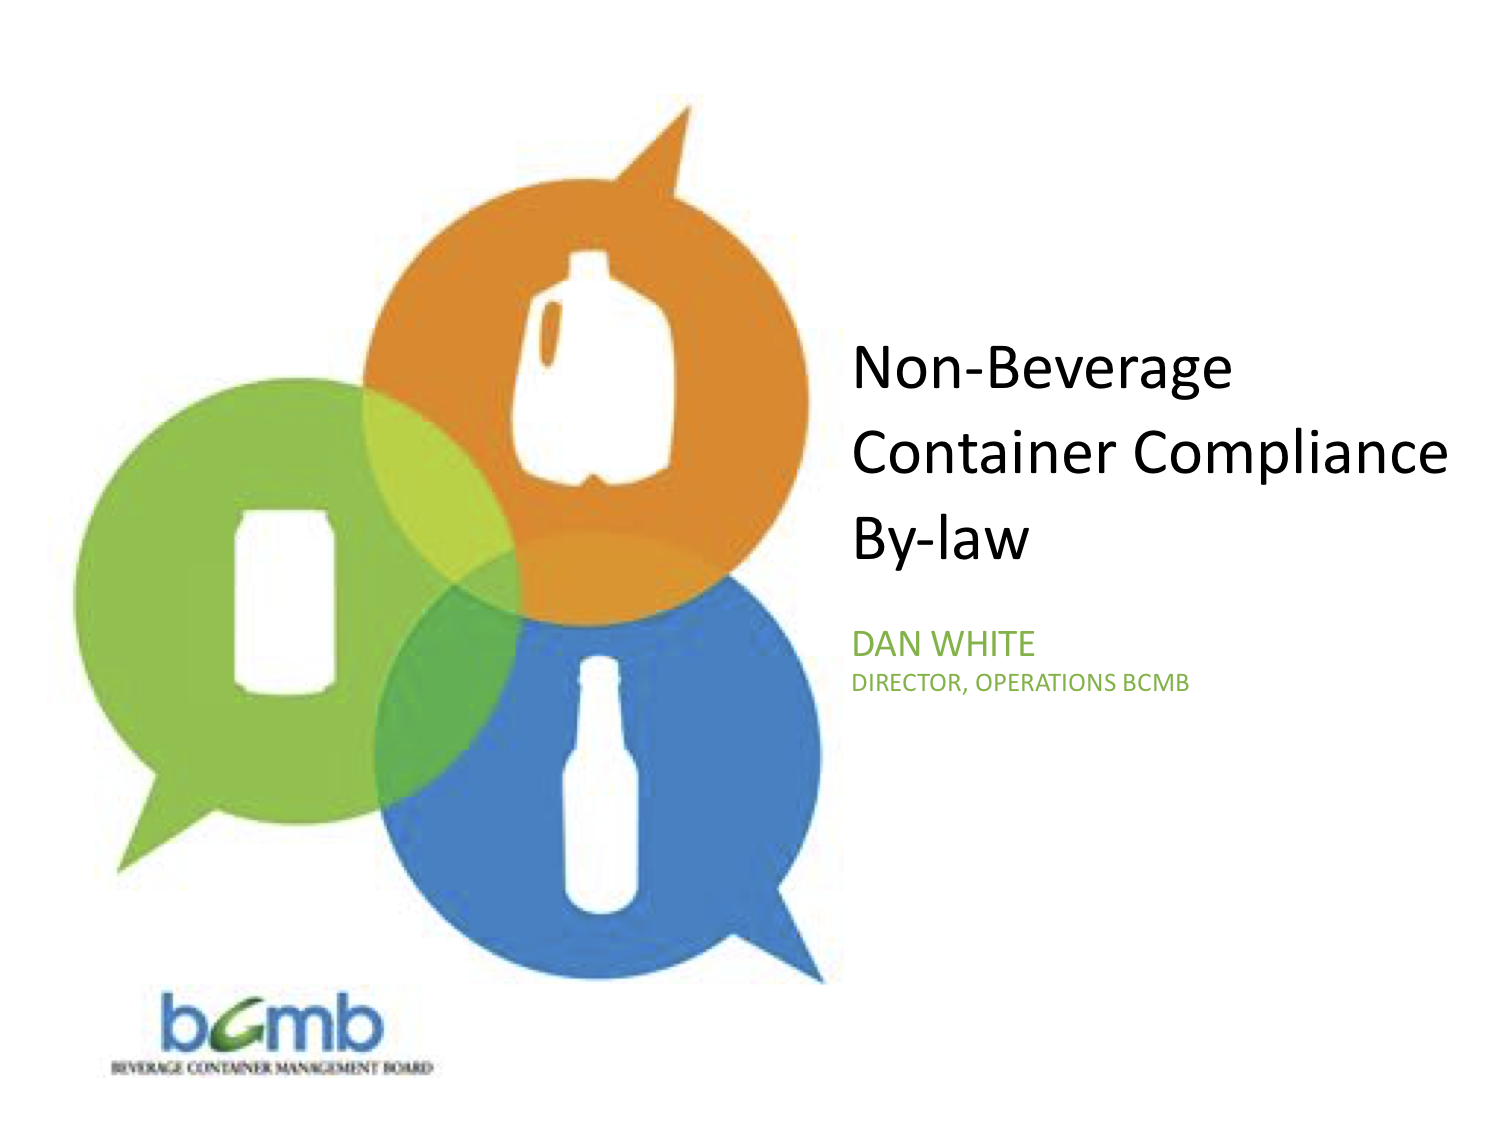 Dan White - Non-Beverage Container Compliance By-law